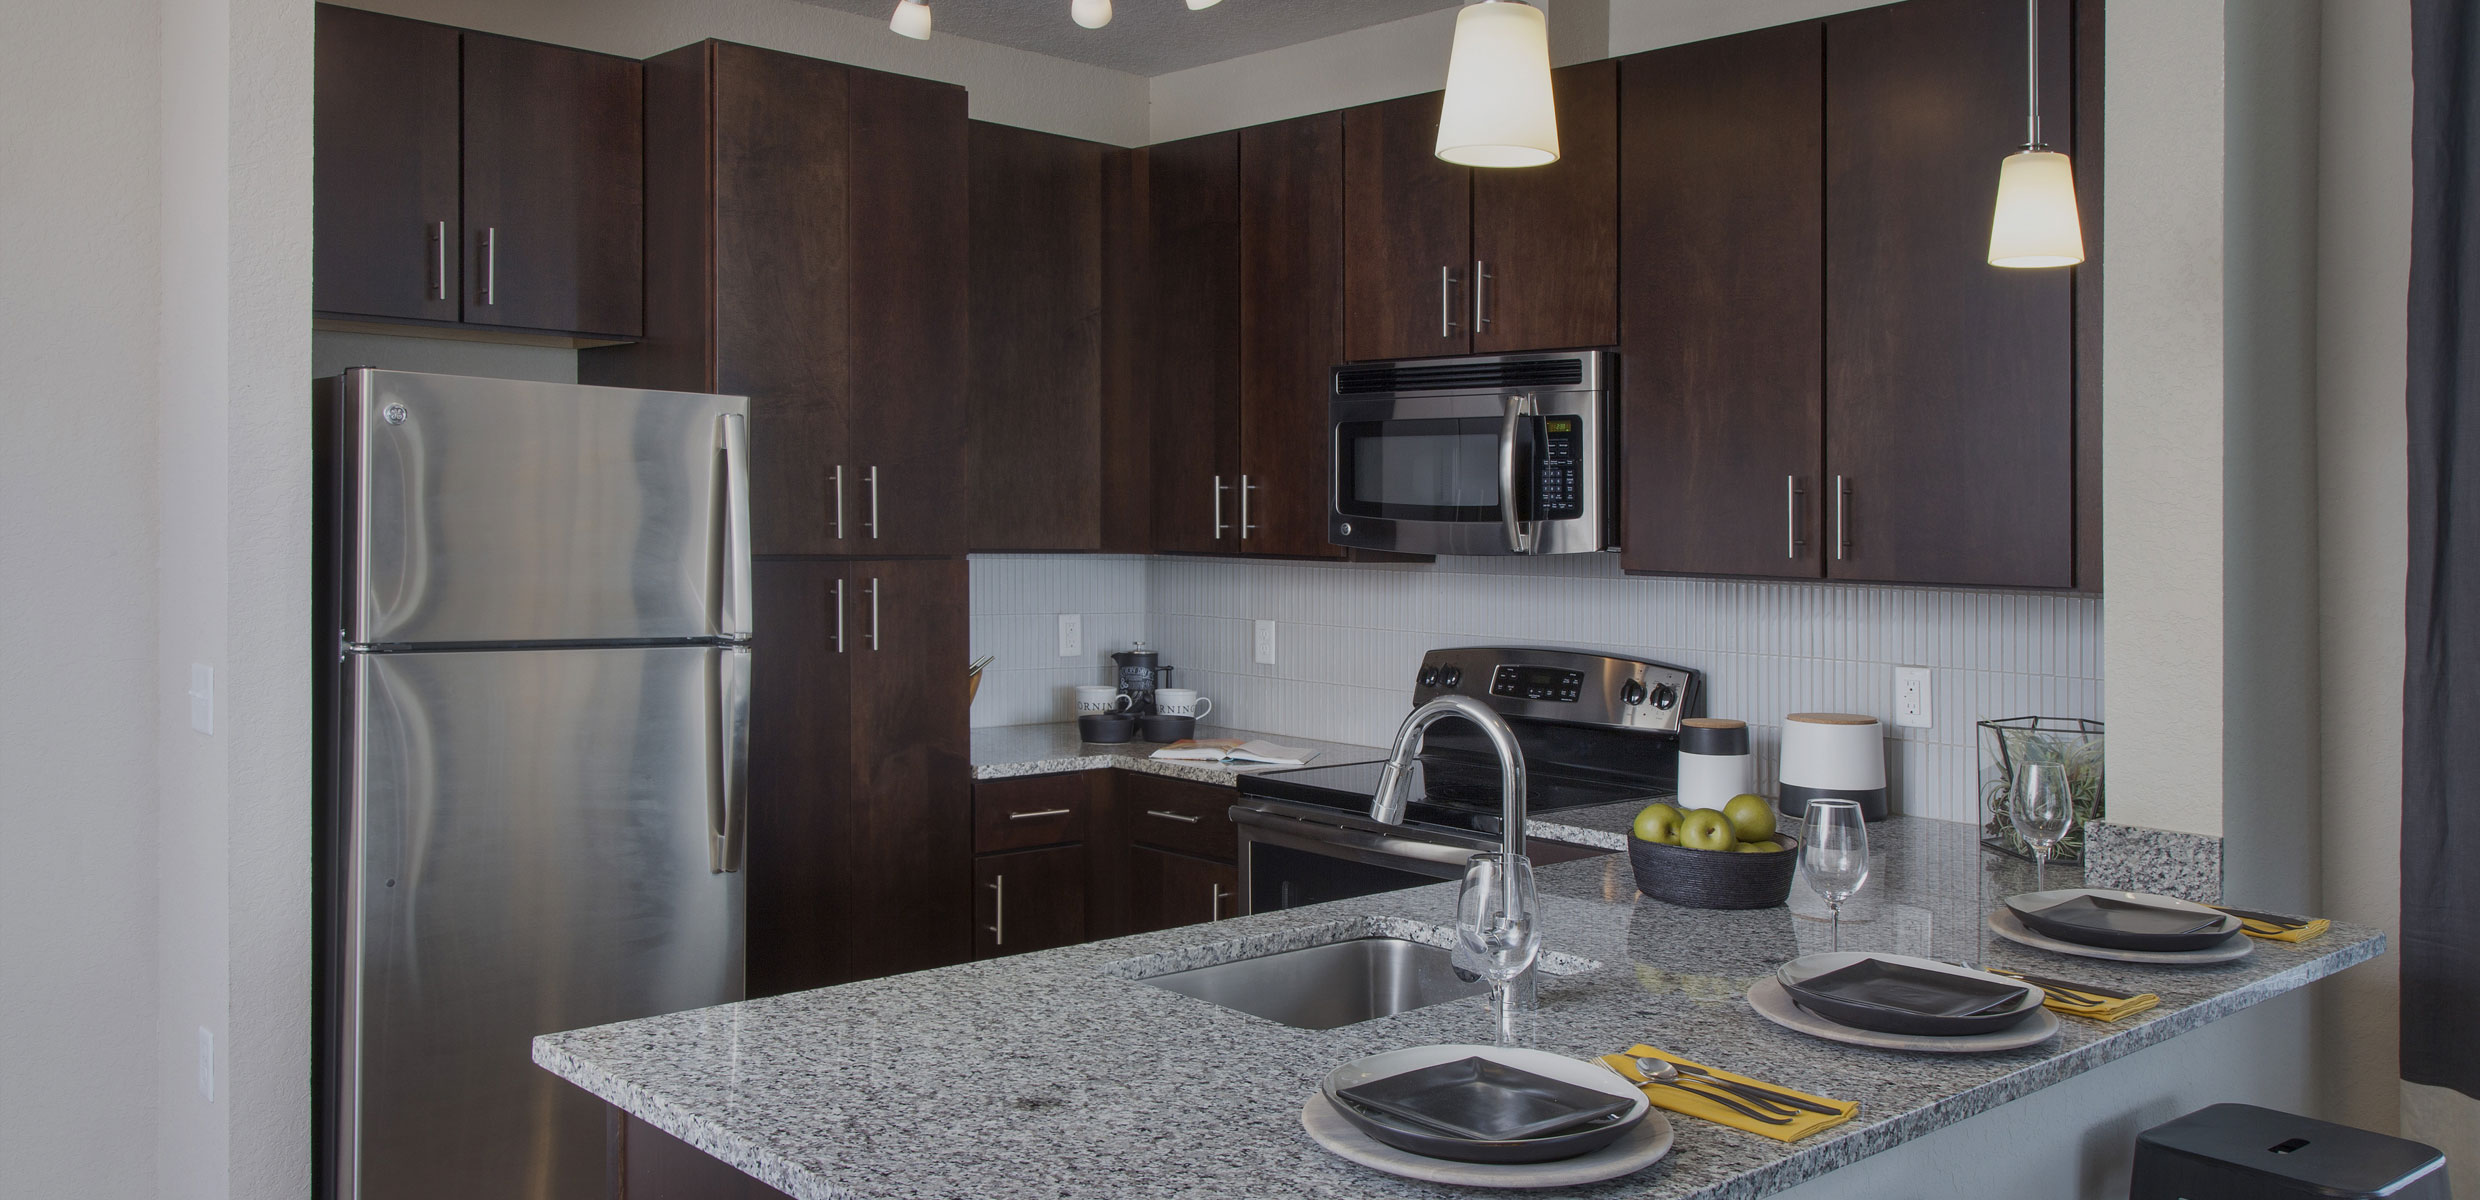 Luxury Kitchen in Dwell Nona Place apartment